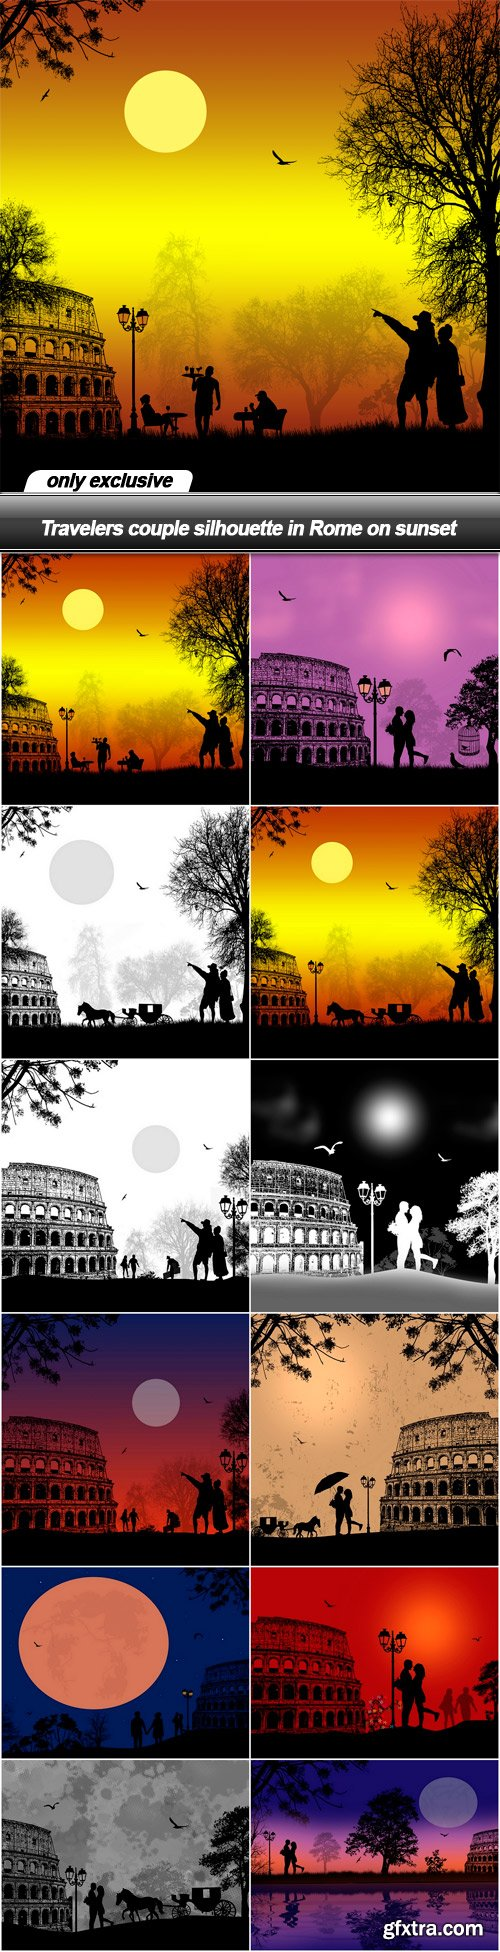 Travelers couple silhouette in Rome on sunset - 12 EPS